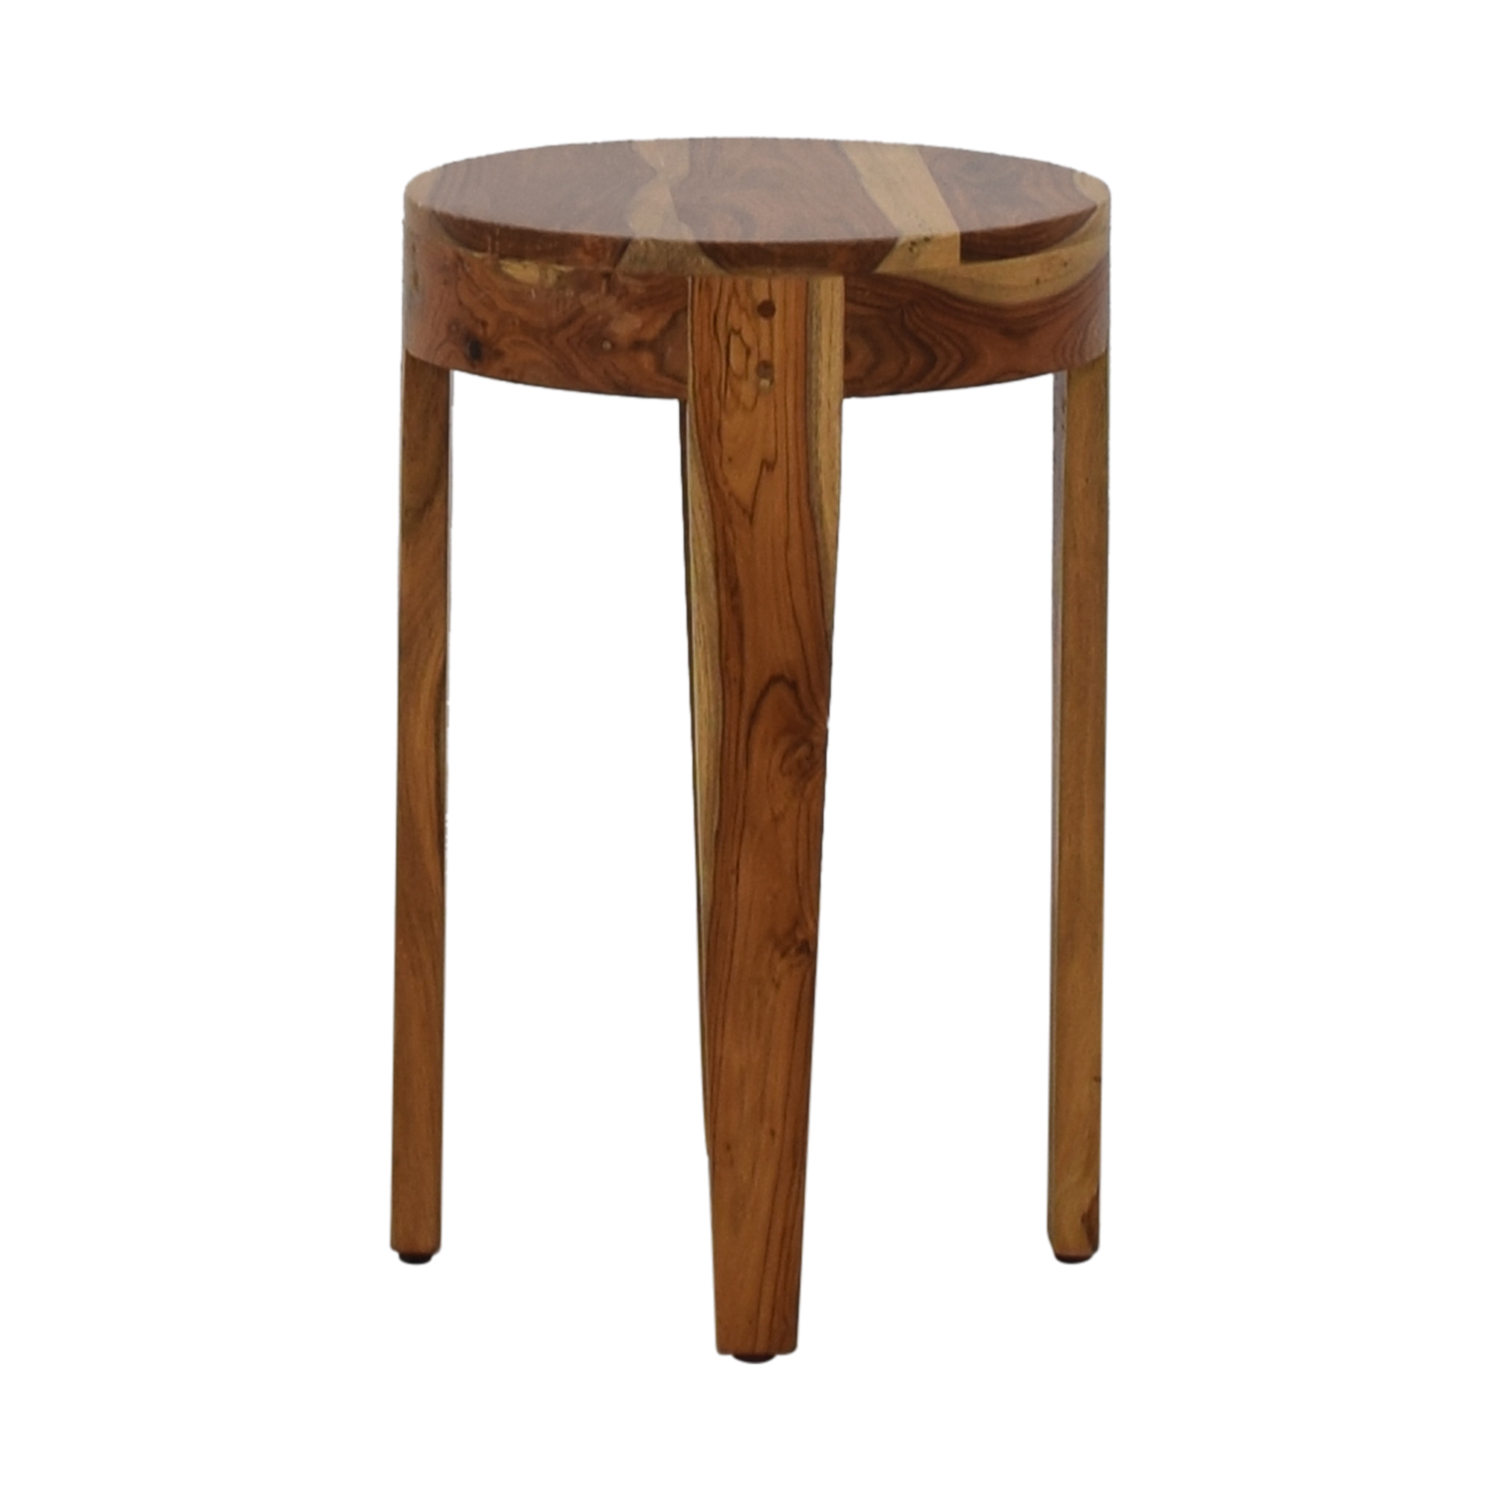 off target small round accent table tables wood second hand rattan microfiber sectional couch simple coffee door console cabinet antique inlaid living room end wrought iron side